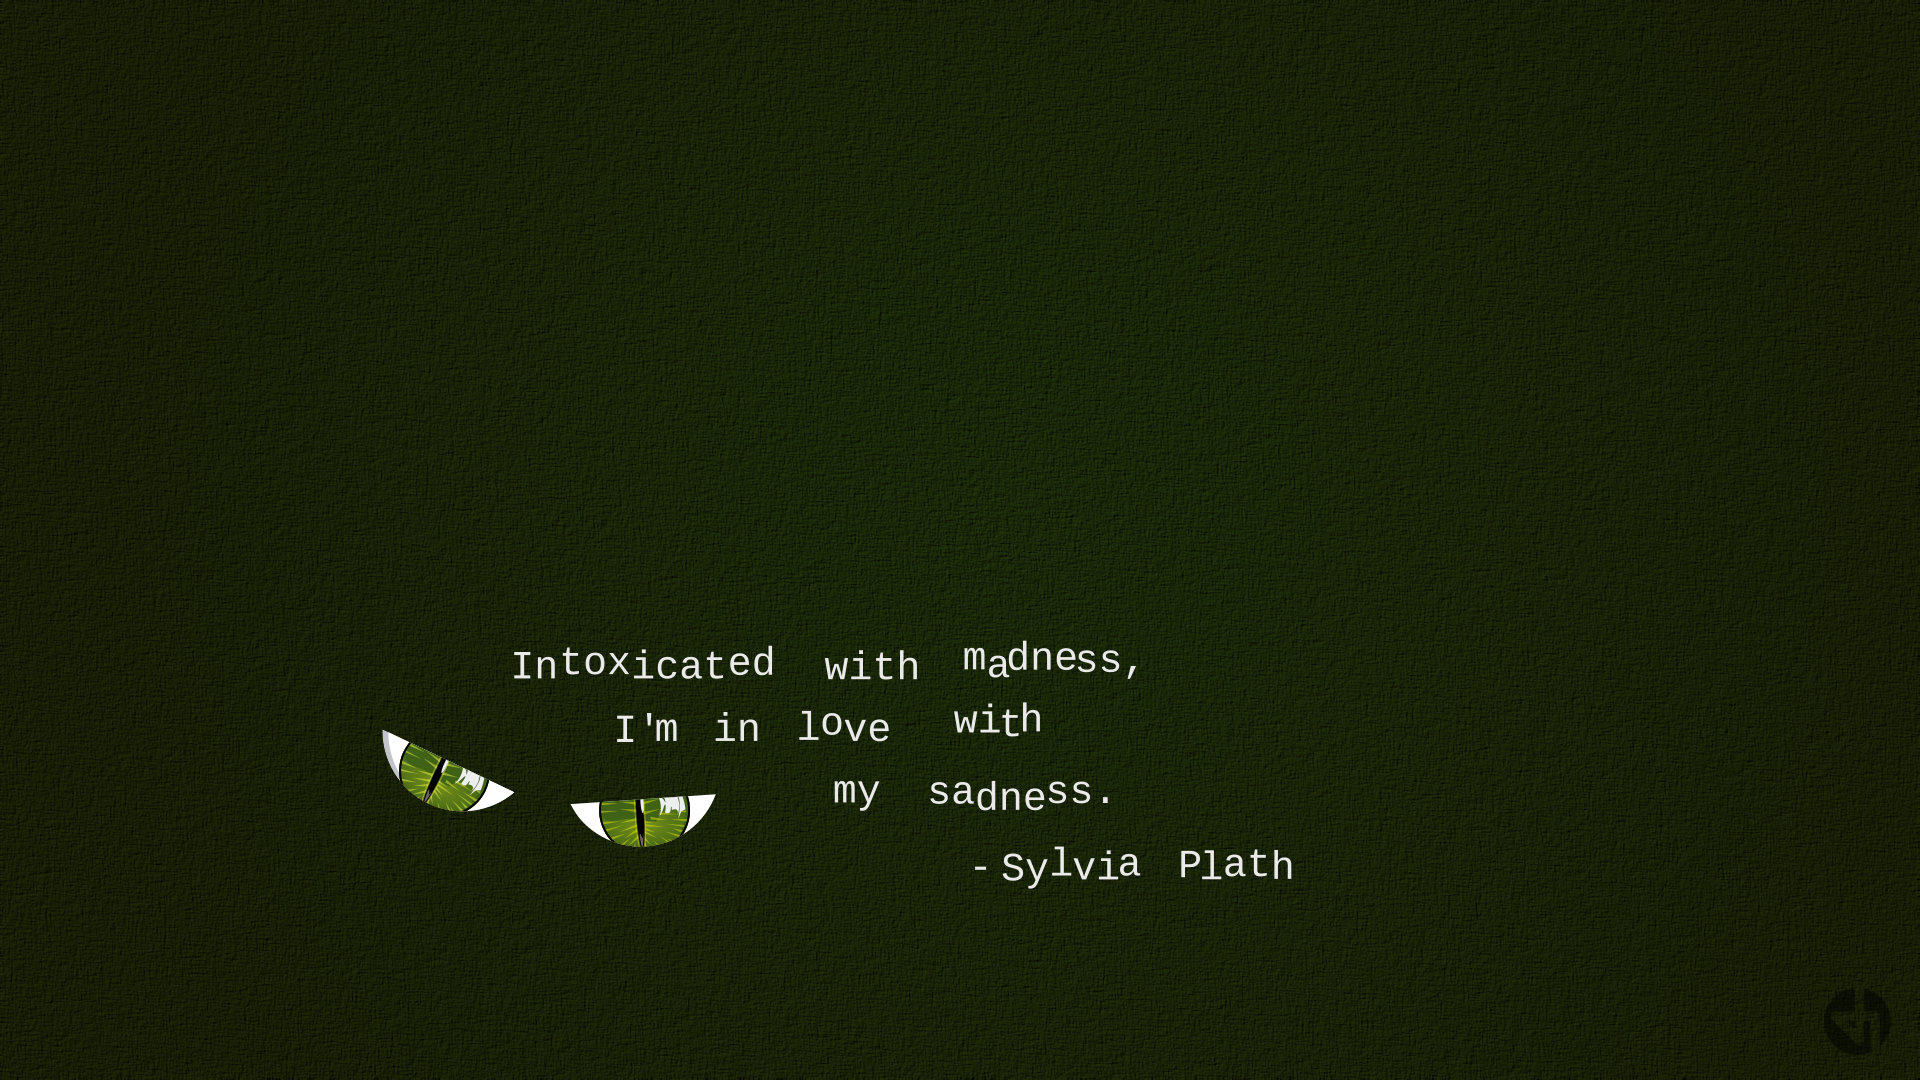 """A desktop wallpaper with a quote by Sylvia Plath, """"Intoxicated with madness, I'm in love with my sadness."""""""